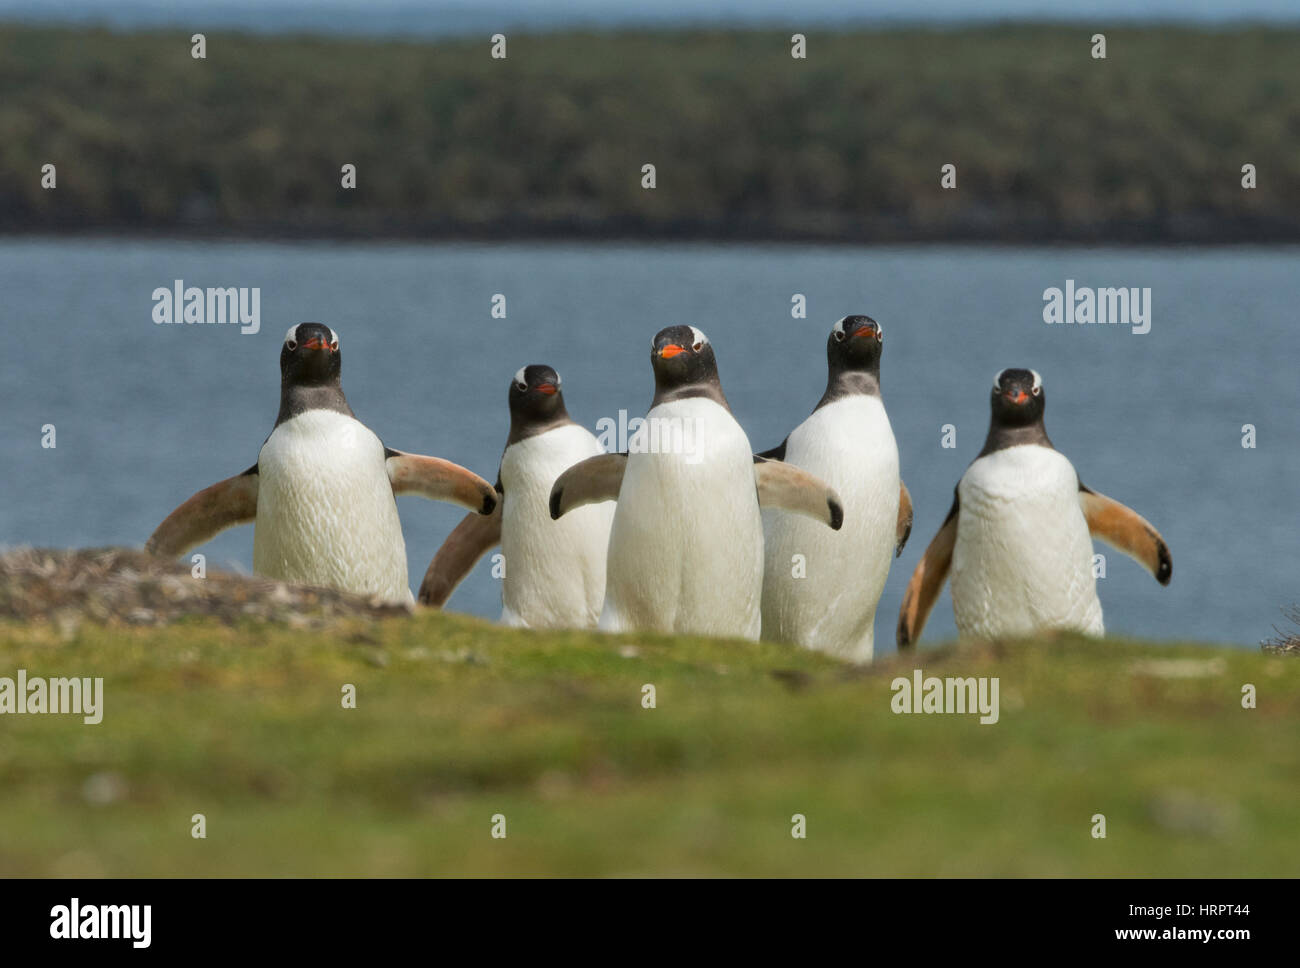 Gentoo Penguins (Pygoscelis papua) marching from the sea to their breeding colony inland, Falkland Islands Stock Photo